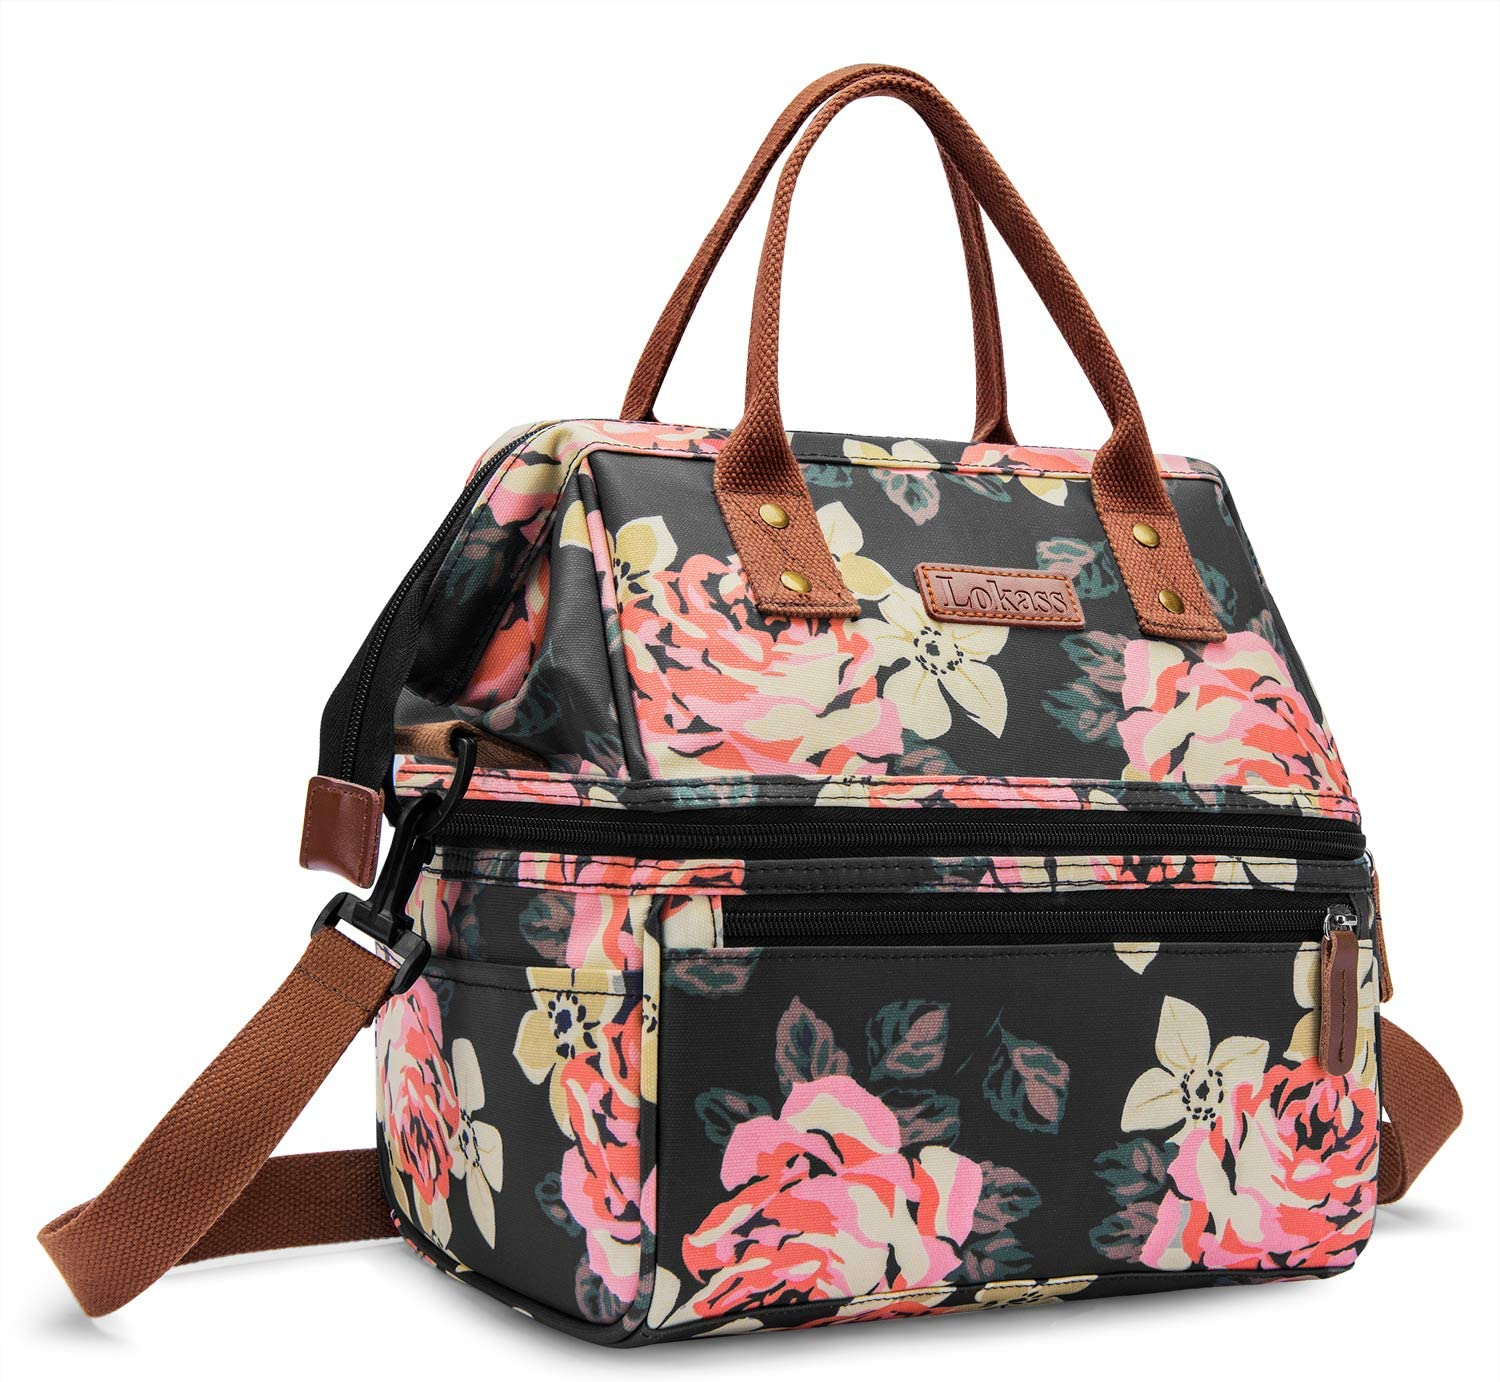 UTOTEBAG Double Deck Lunch Bag Insulated Lunch Box Large Cooler Bag Thermal Snack Organizer Leak Proof Drinks Holder with Shoulder Strap for Women Men, Peony